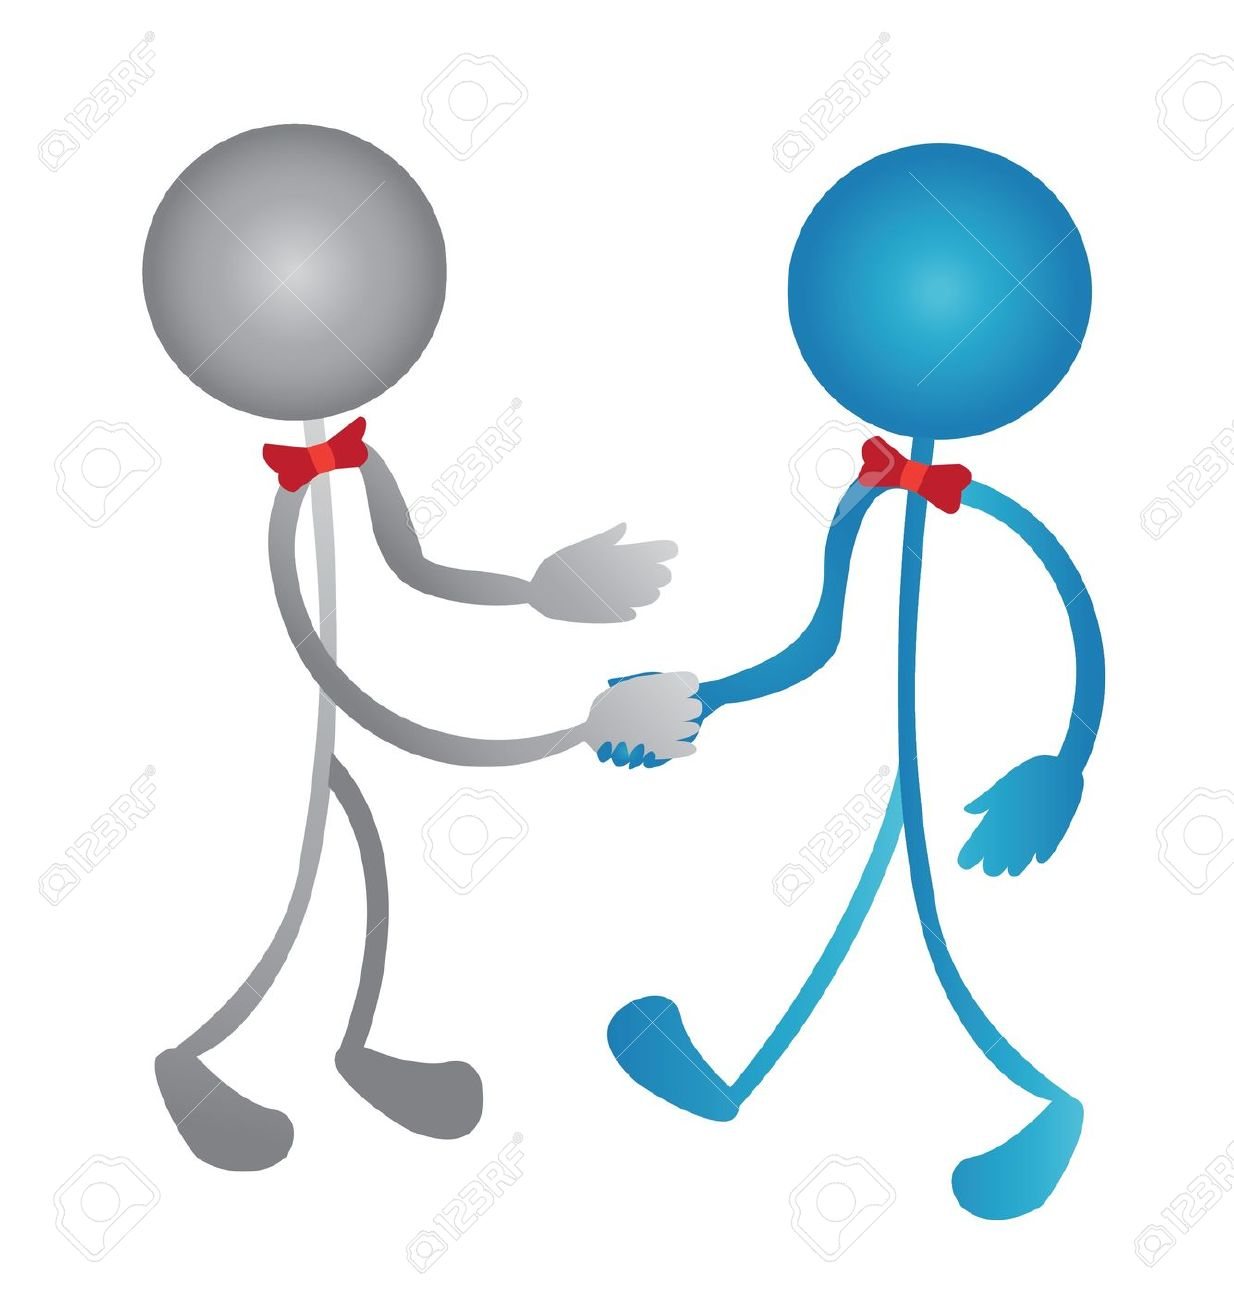 business people handshake clipart clipground clipart handshake transparent clipart handshake partnership